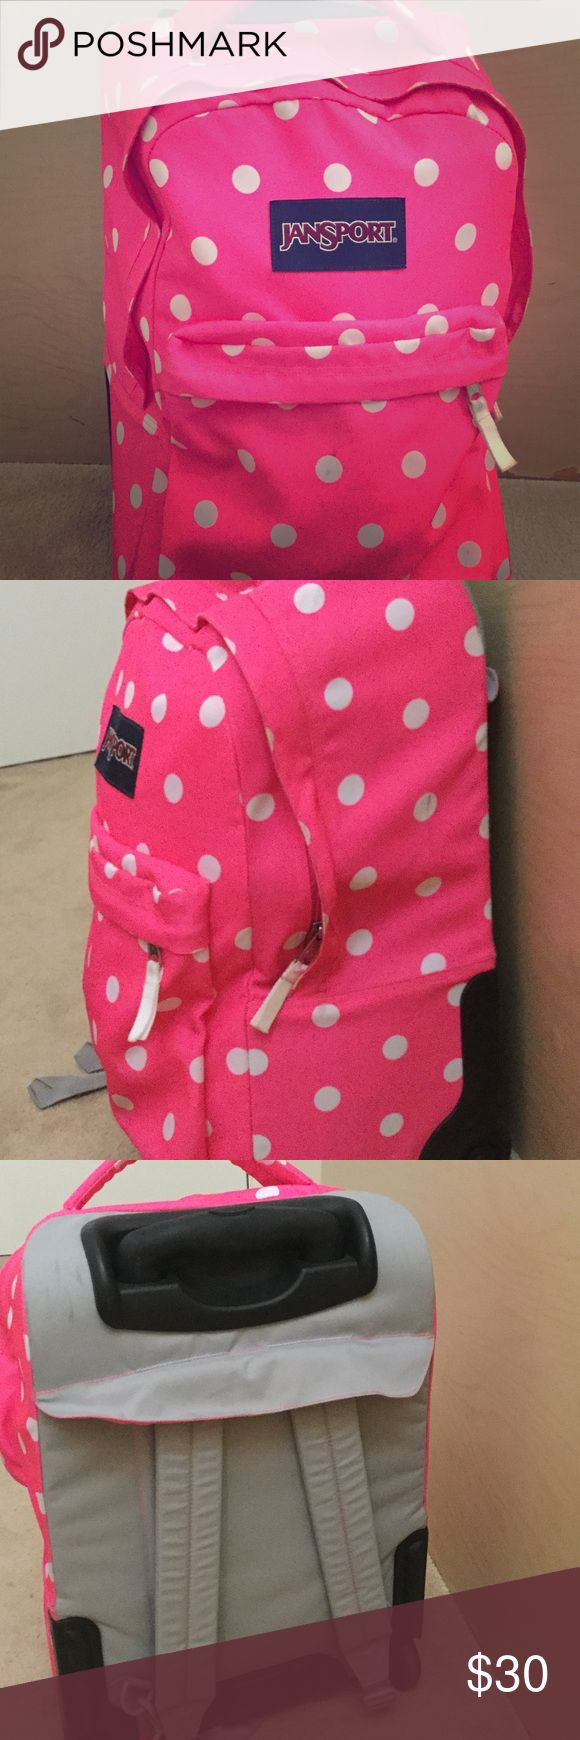 Pink Jansport backpack Never used pink and white polka dot back pack Jansport Other